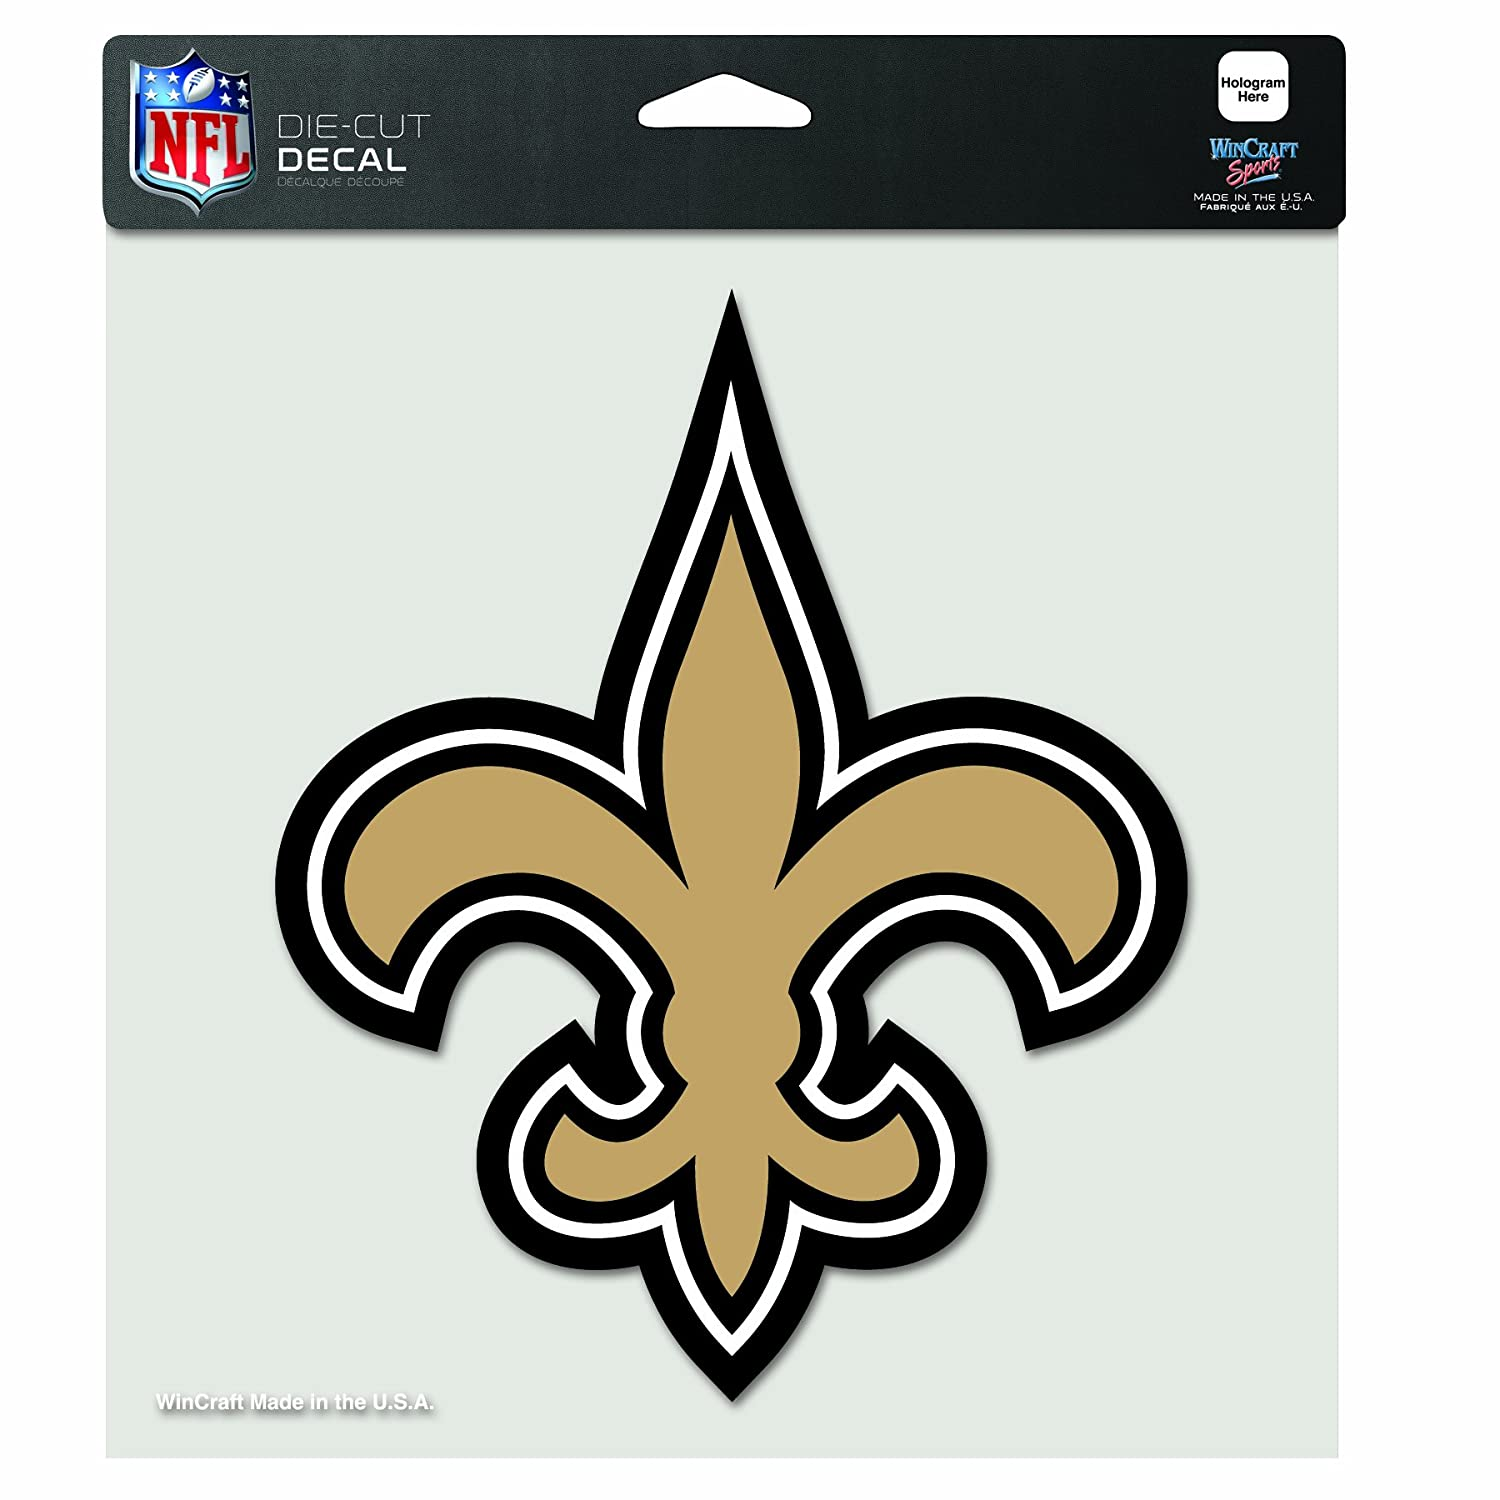 Amazon nfl new orleans saints 8 by 8 inch diecut colored decal amazon nfl new orleans saints 8 by 8 inch diecut colored decal sports fan decals sports outdoors biocorpaavc Gallery